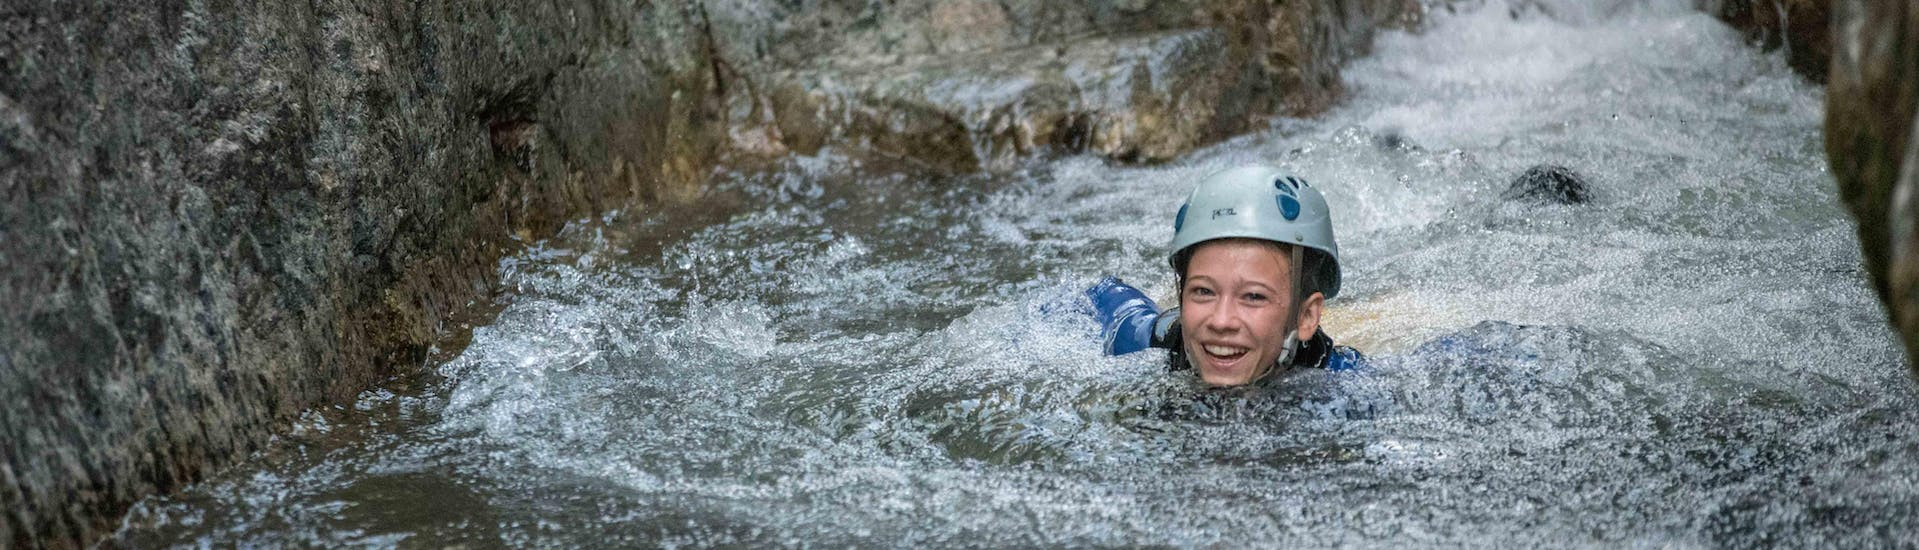 A canyoning enthusiast is swimming in a natural pool during a canyoning tour with Les Intraterrestres.